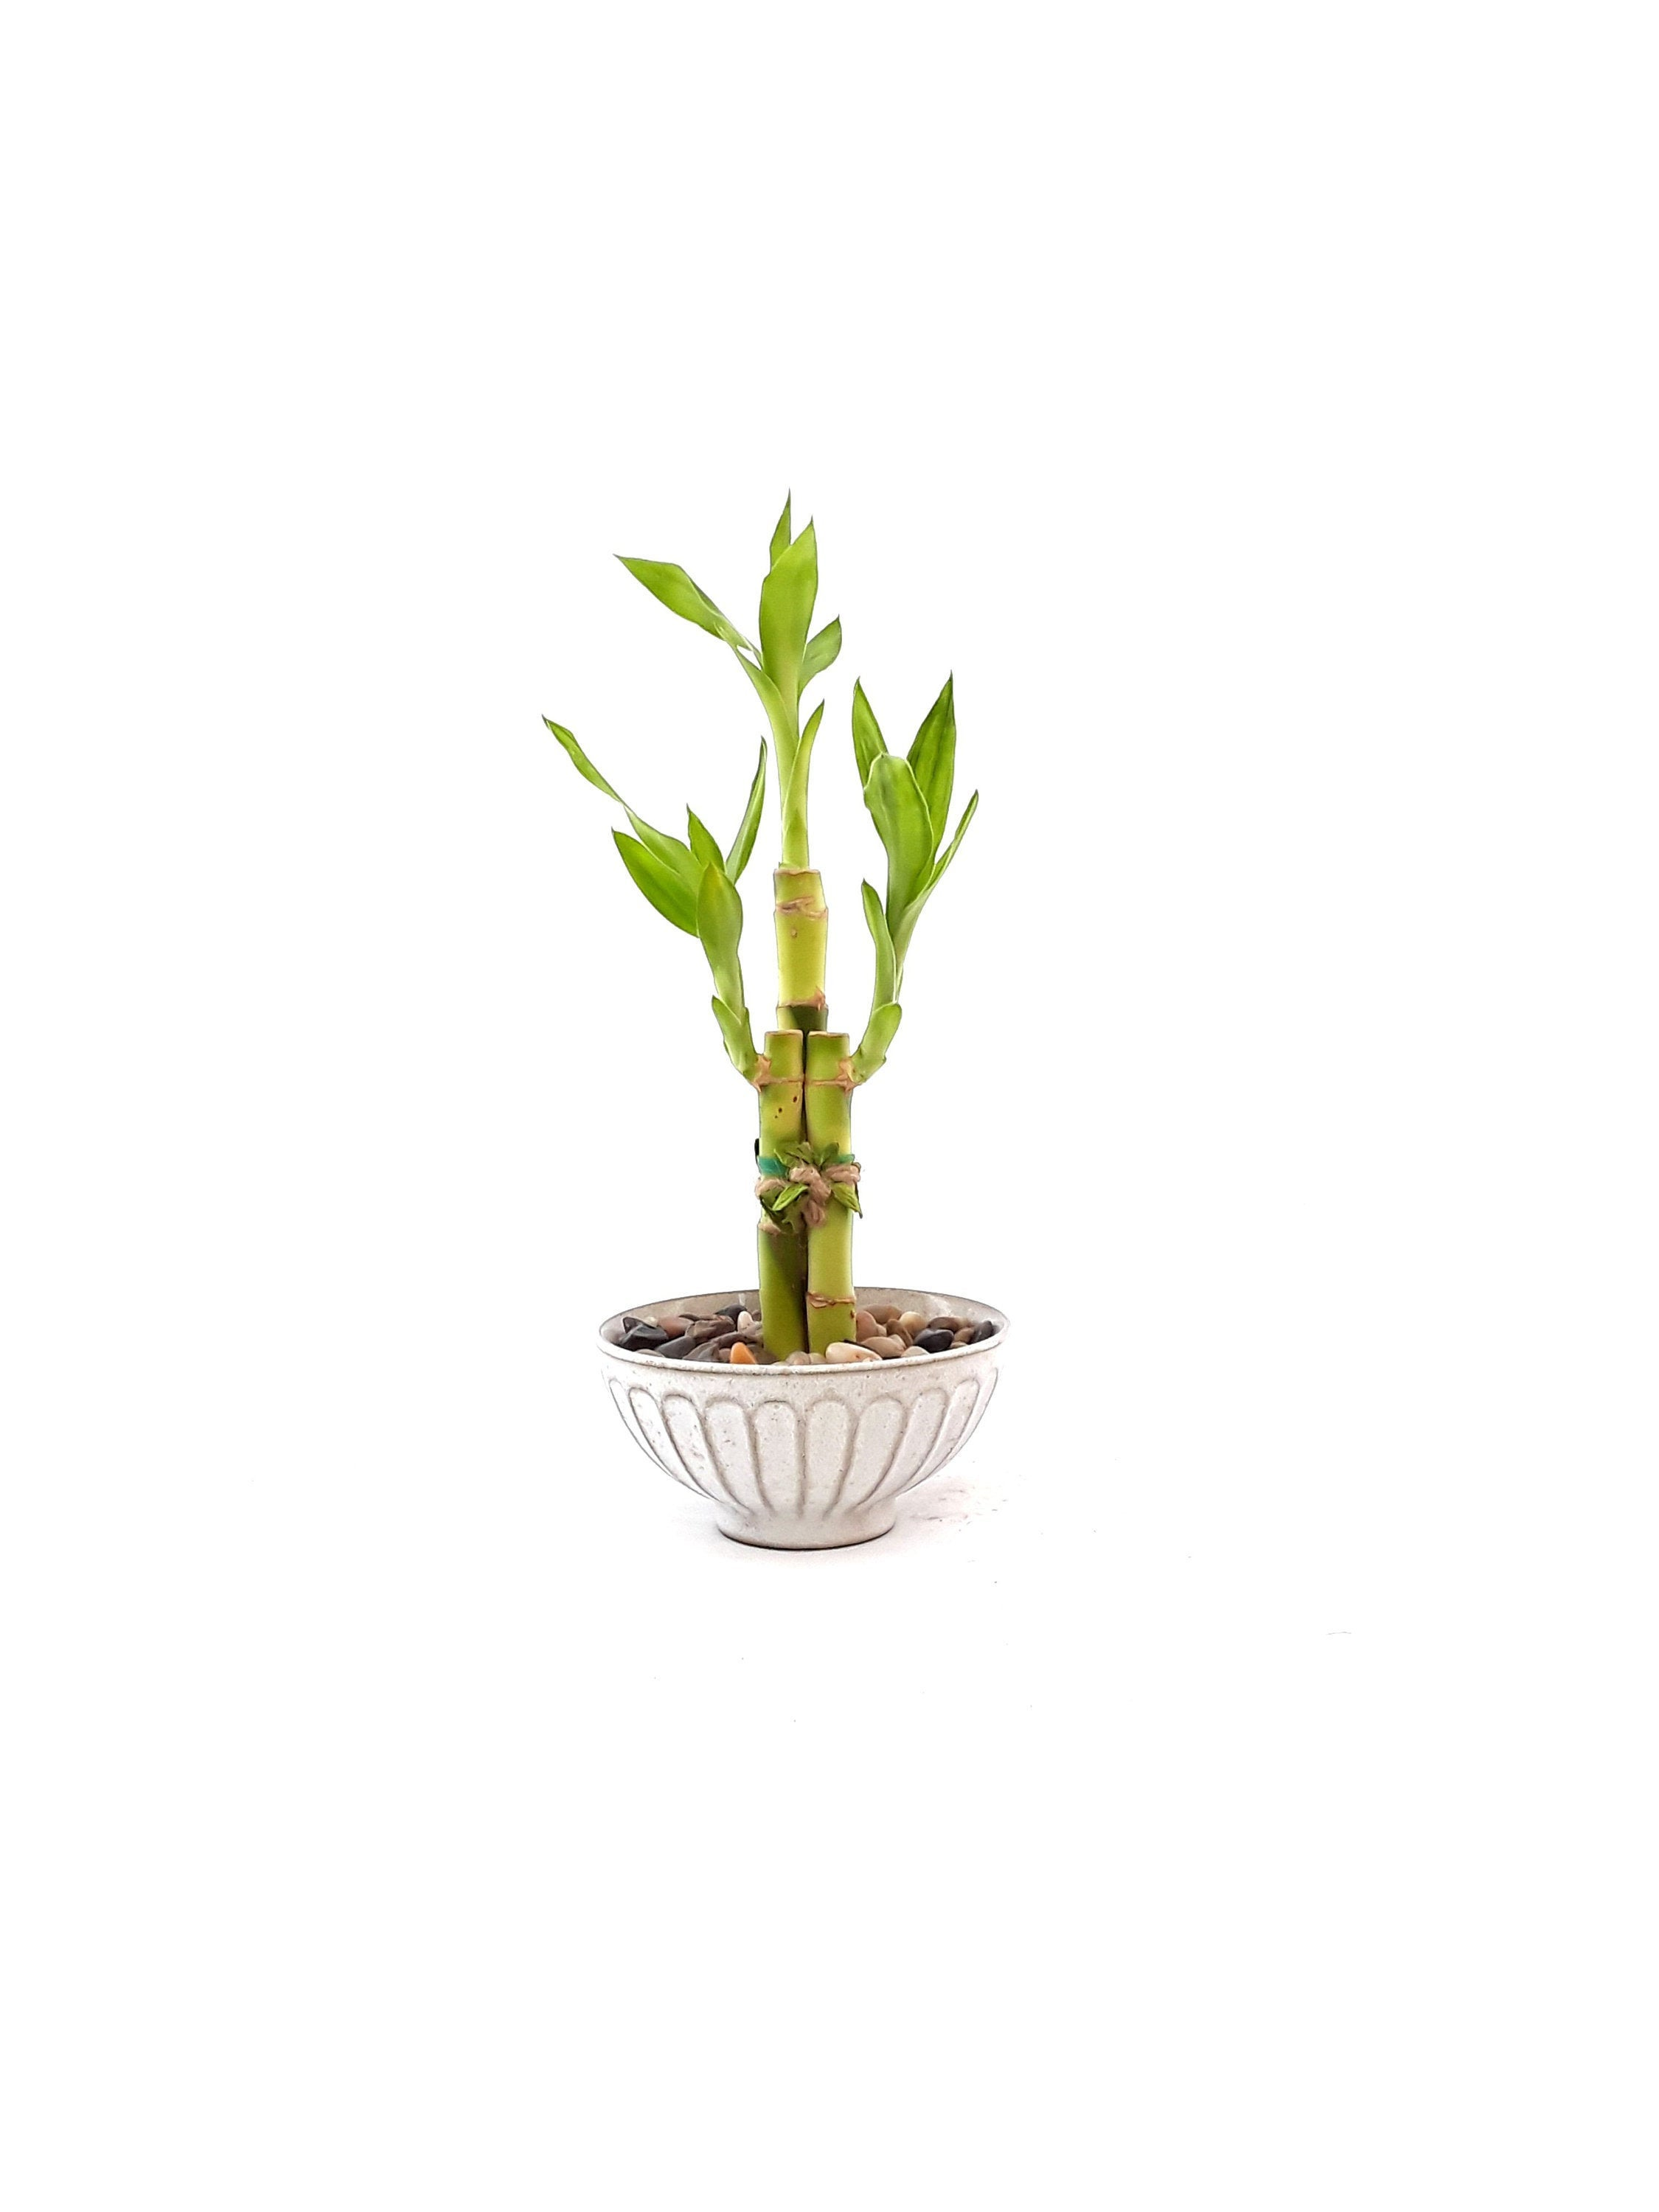 wedding deco Housewarming Unique birthday holiday gift Indoor plant Lucky Bamboo in a floral Pot planter